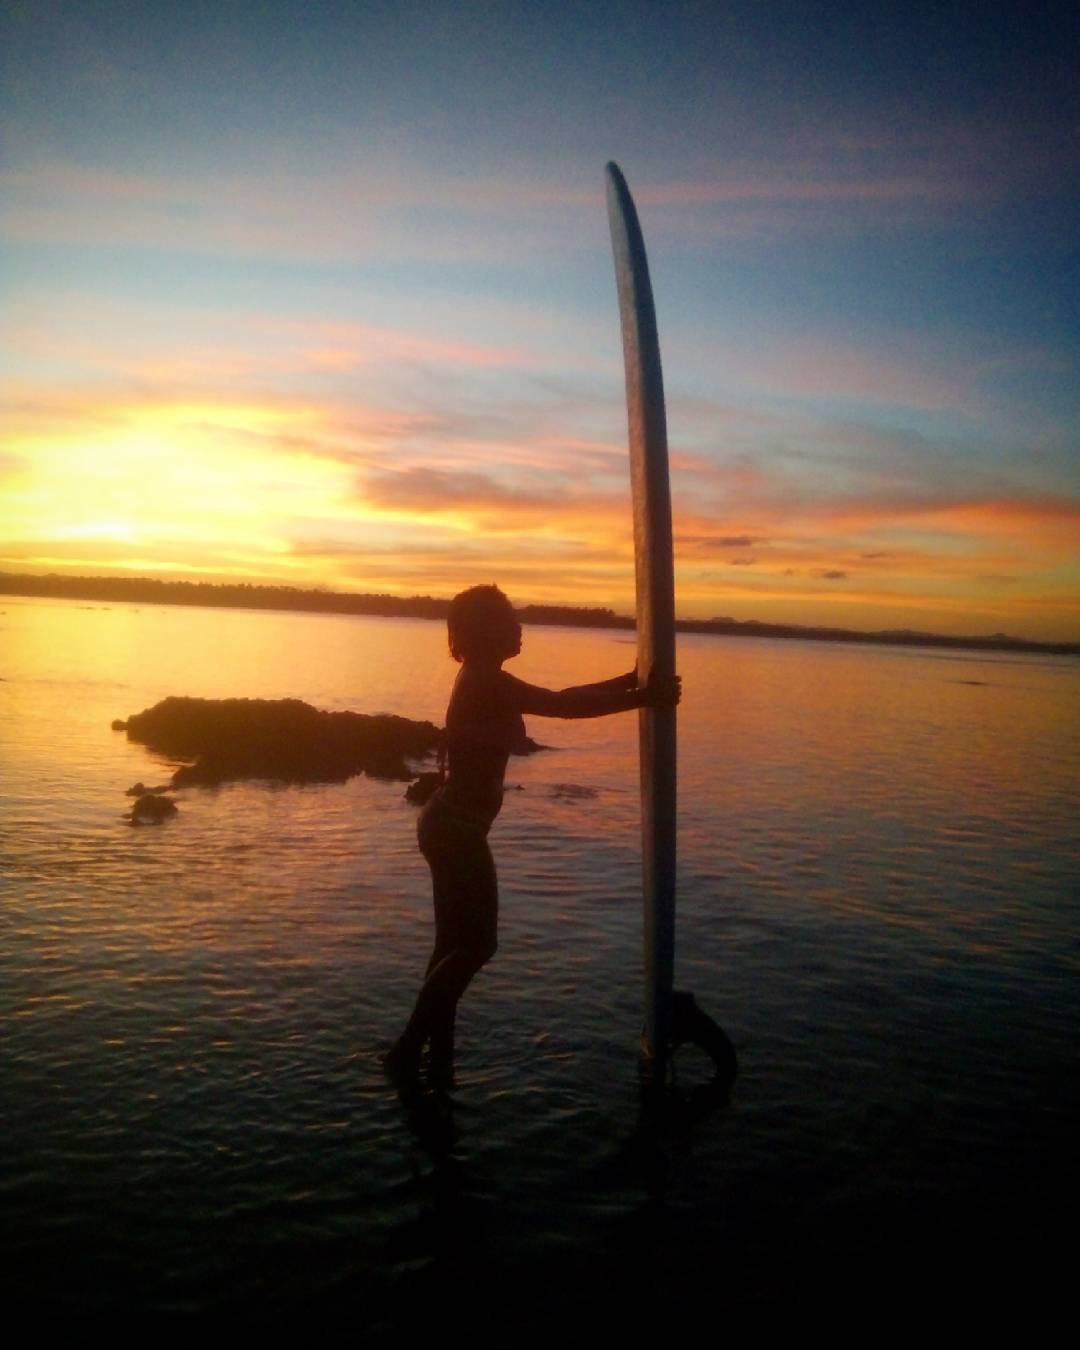 sunset surfing here in siargao for more than 3 hourshellip